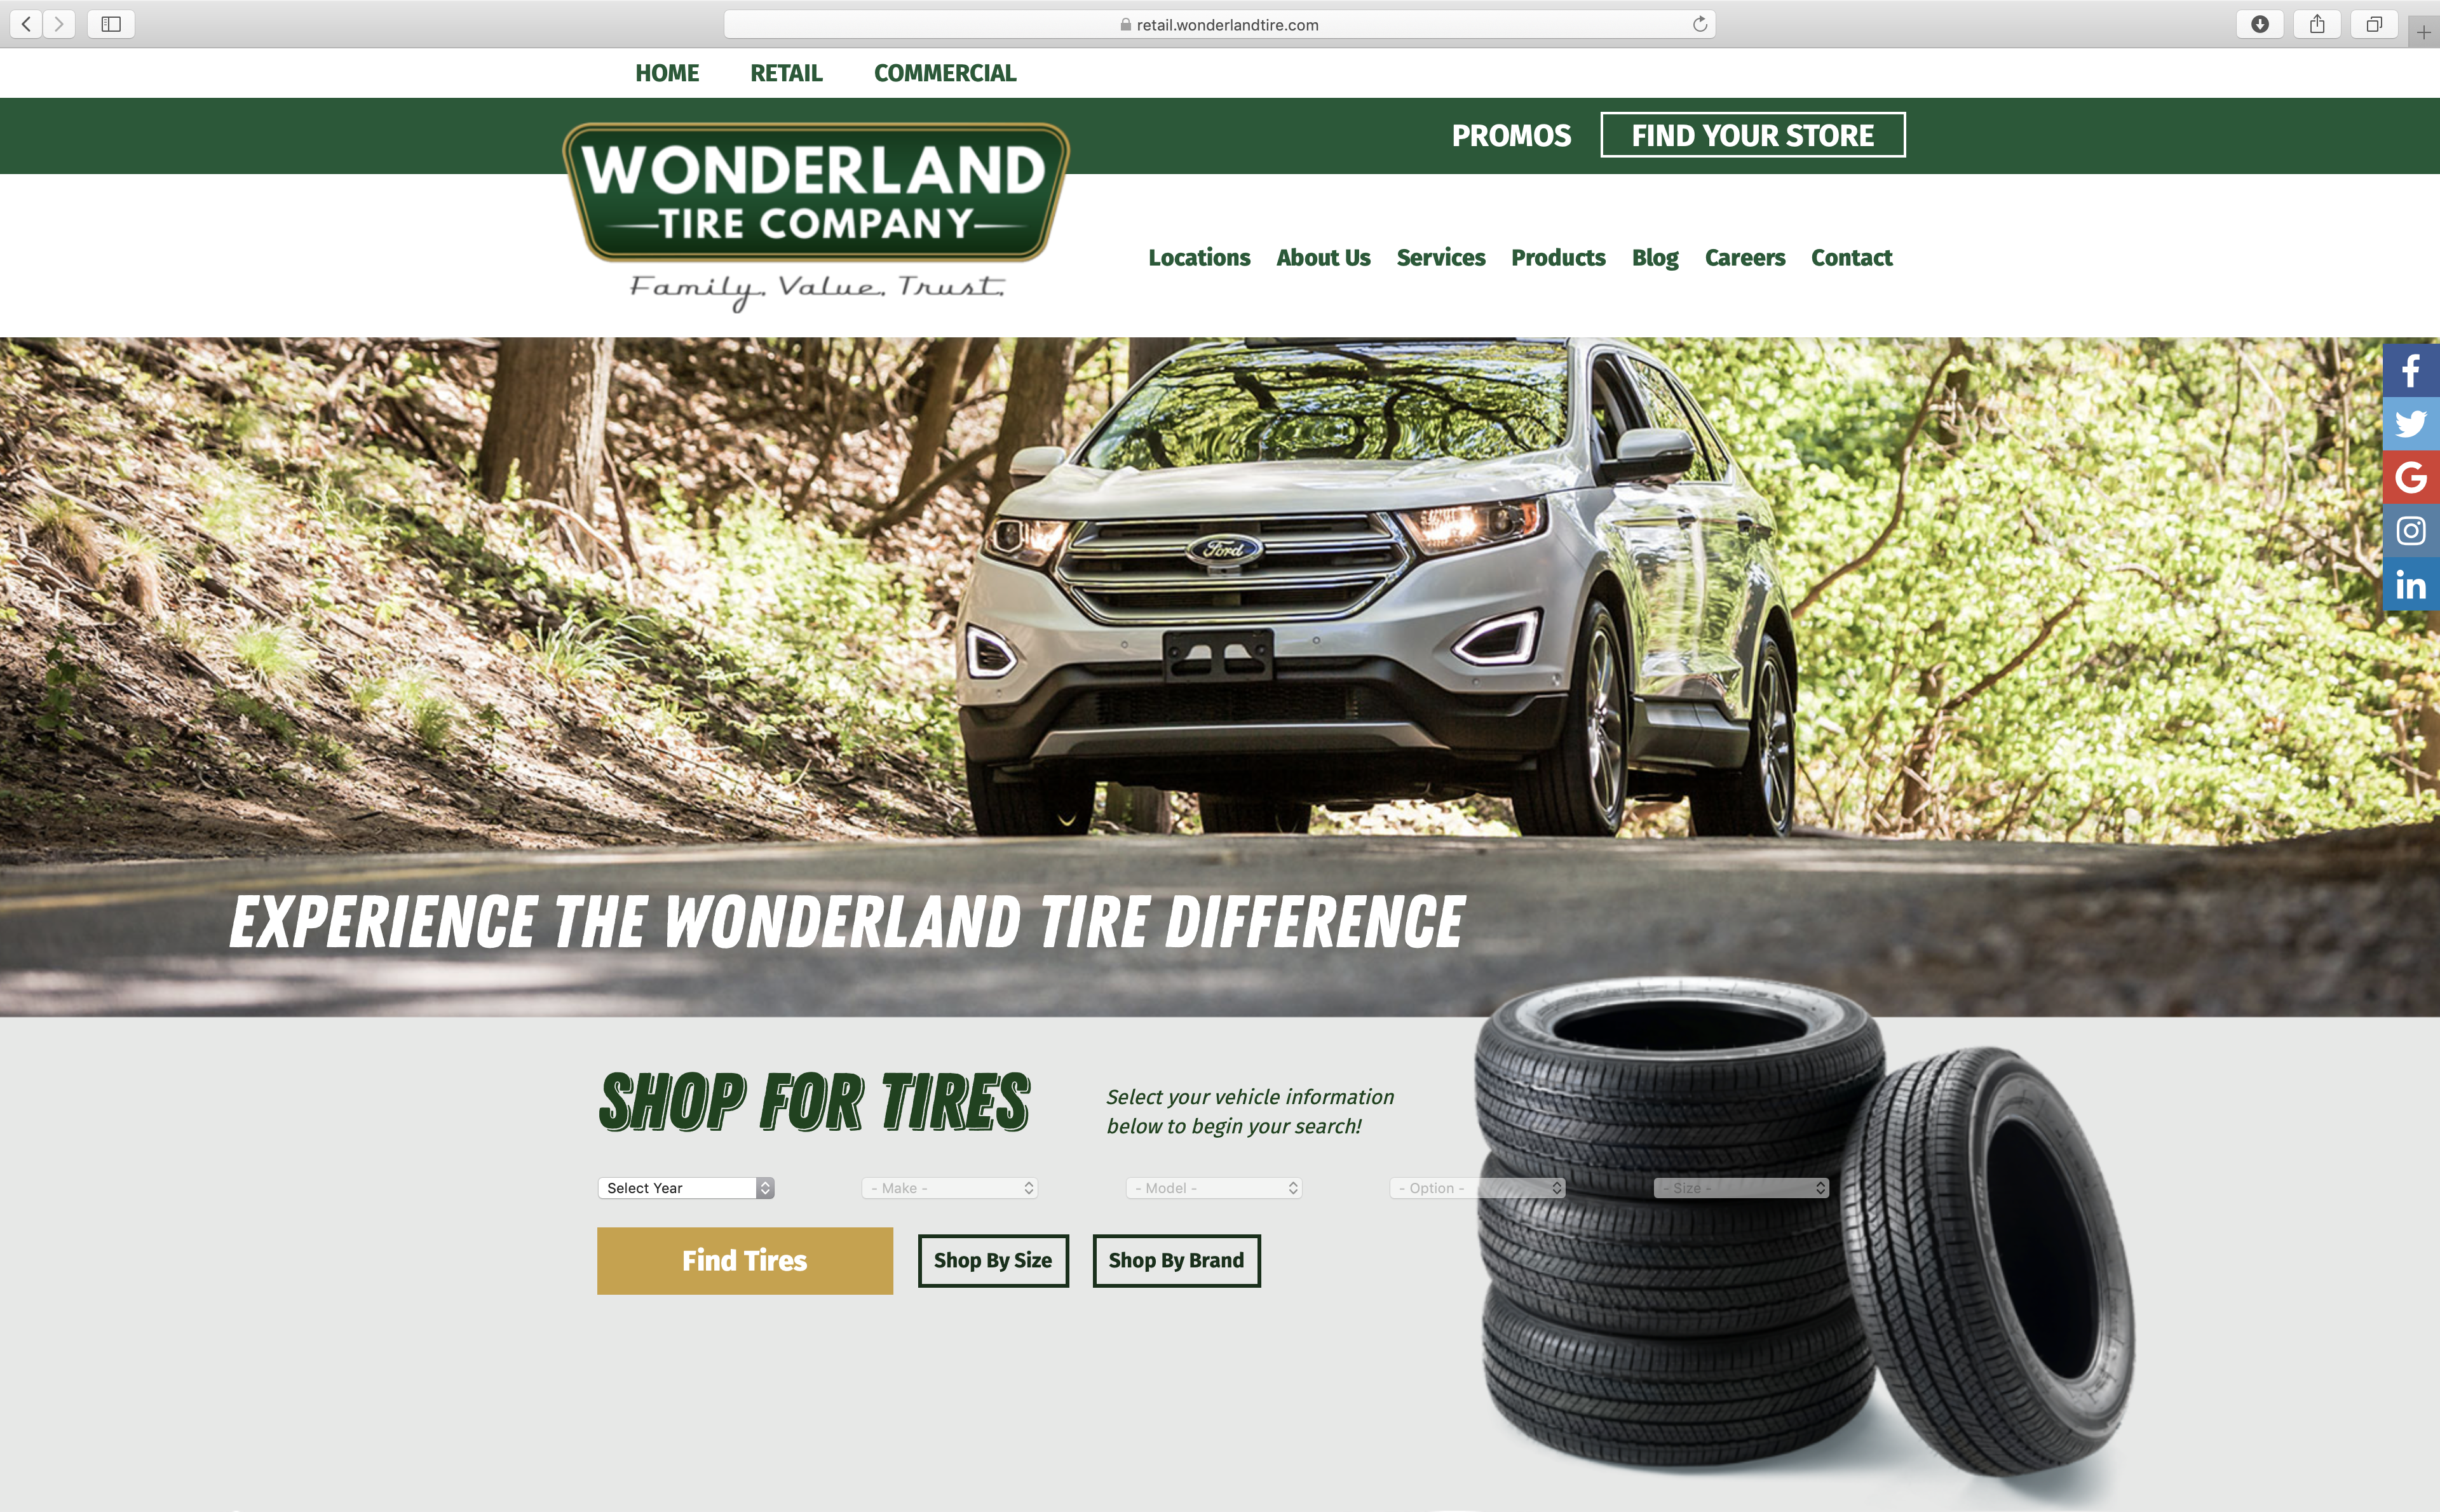 retail landing page with e-commerce for wonderland tire company